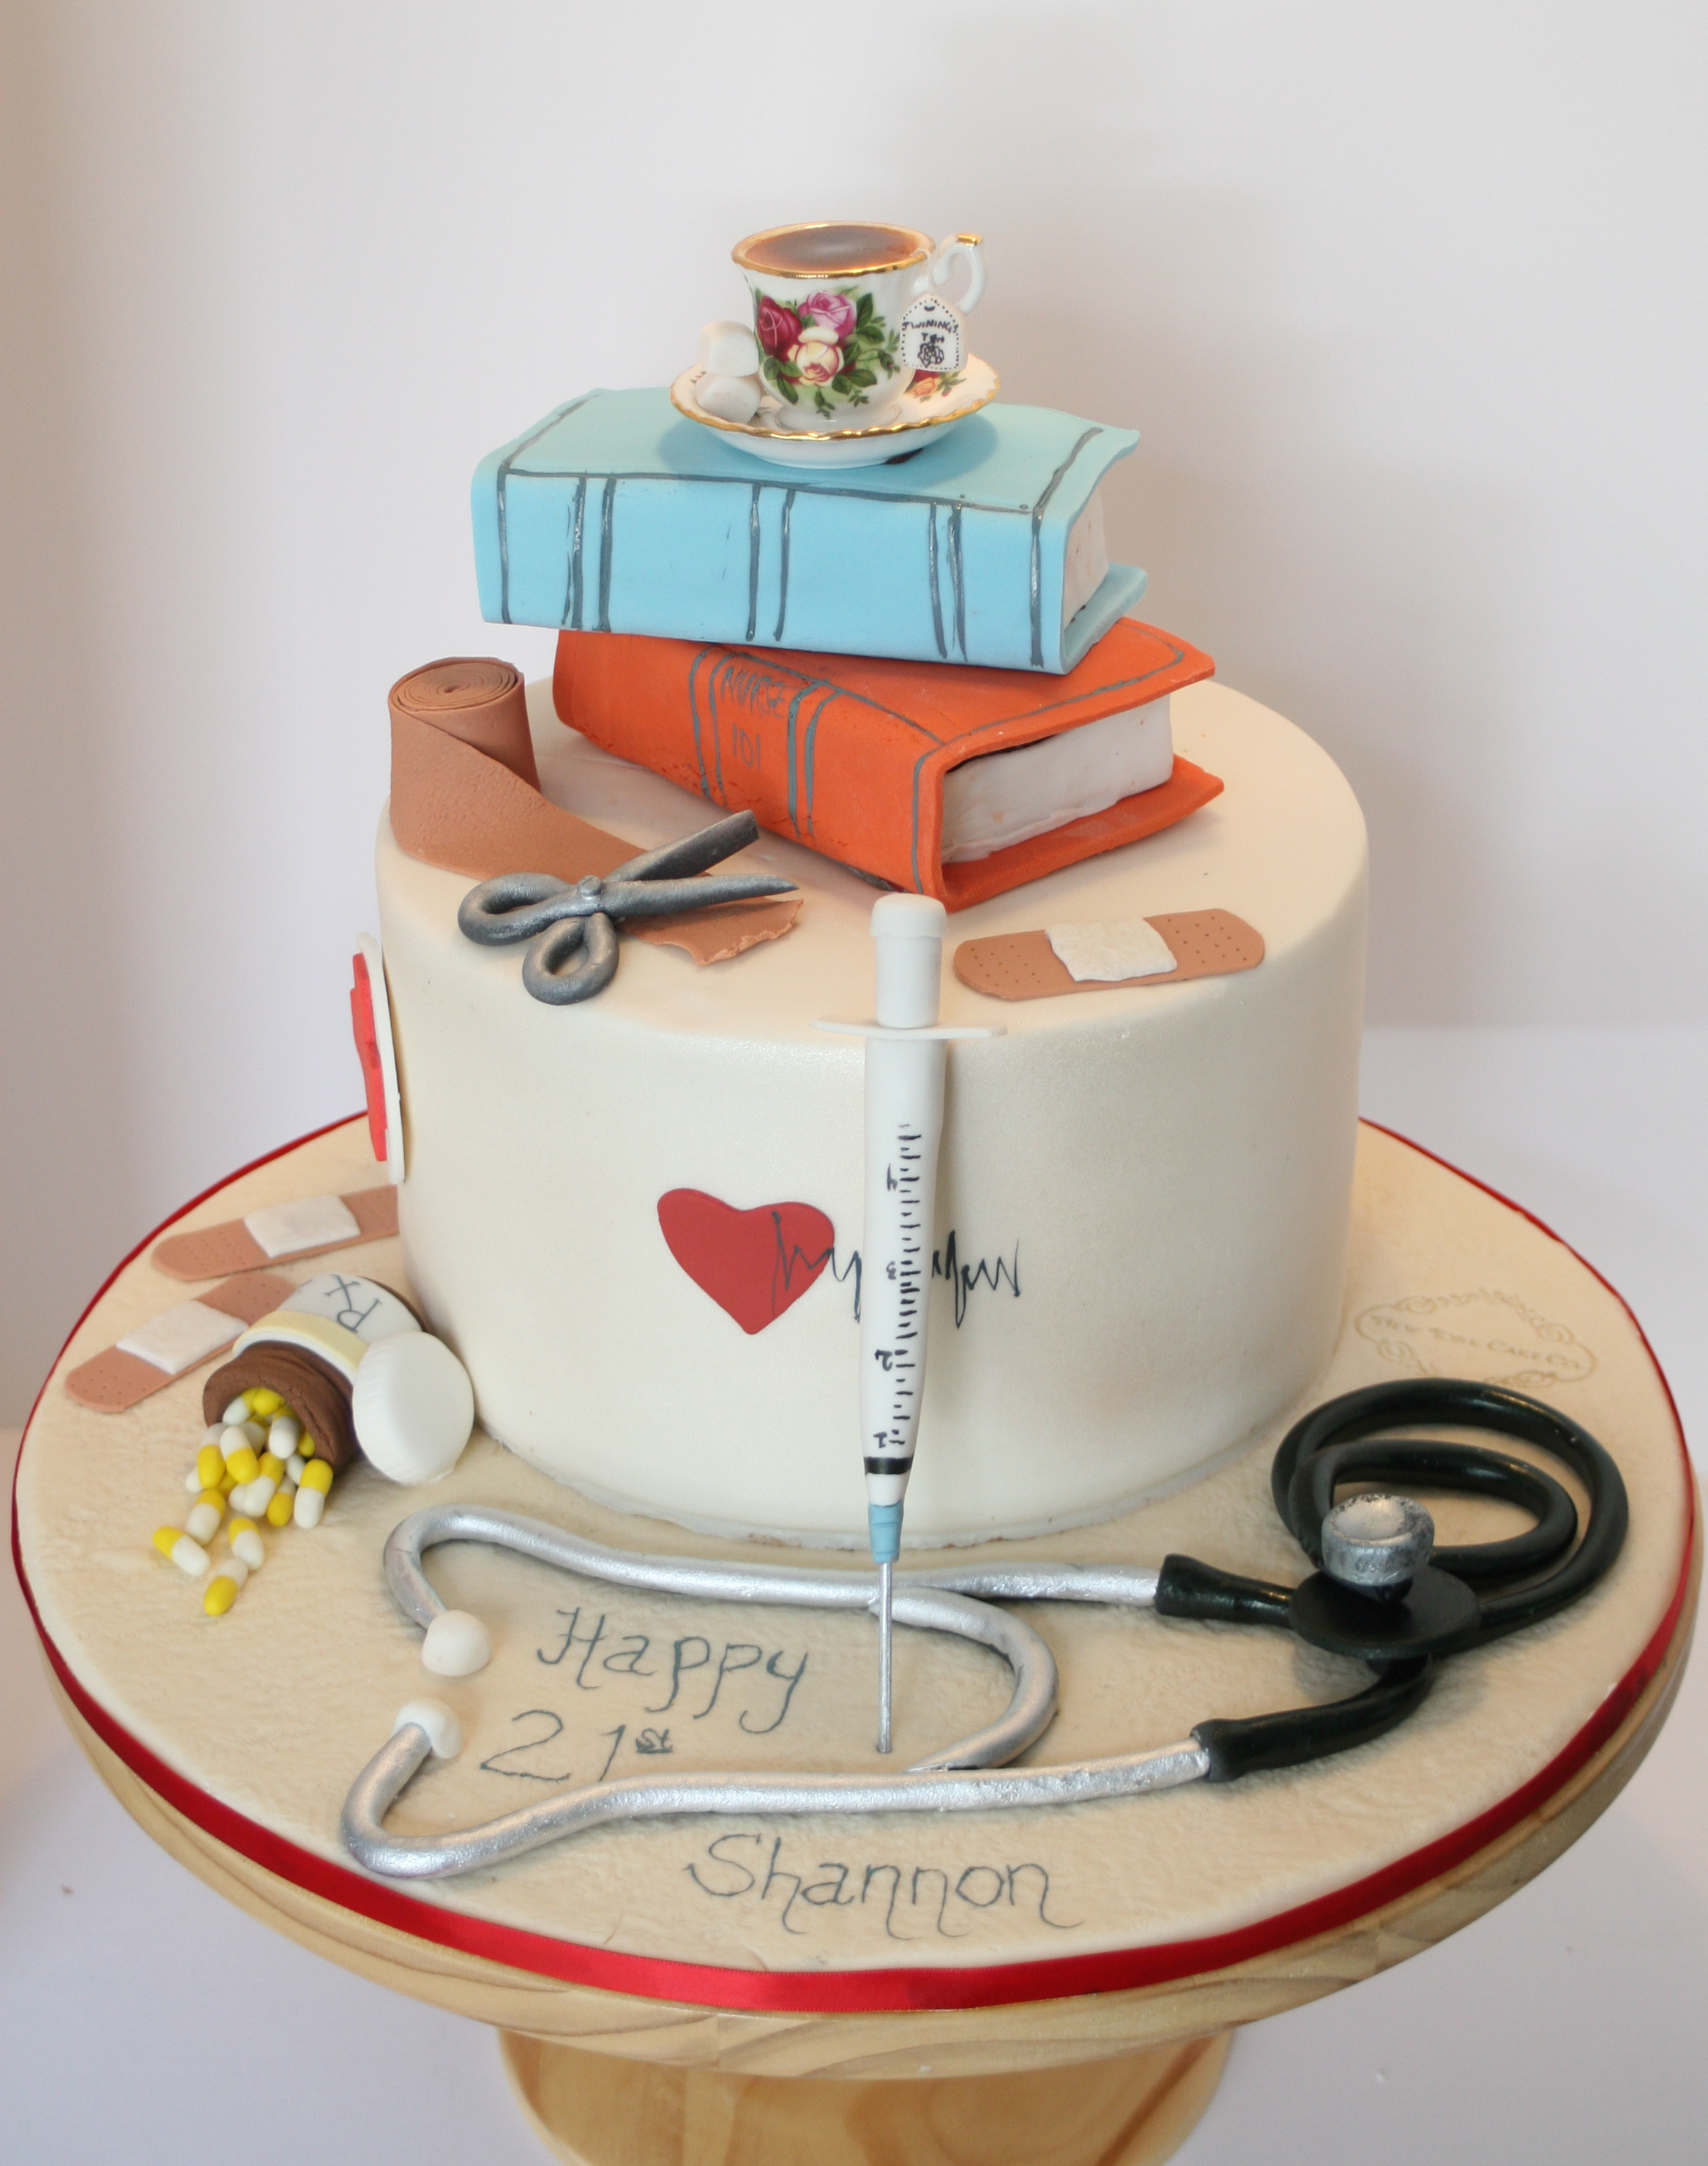 Cake Decorating Medical Theme : A Perfect Cake for a Student Nurse New York Cake Co.